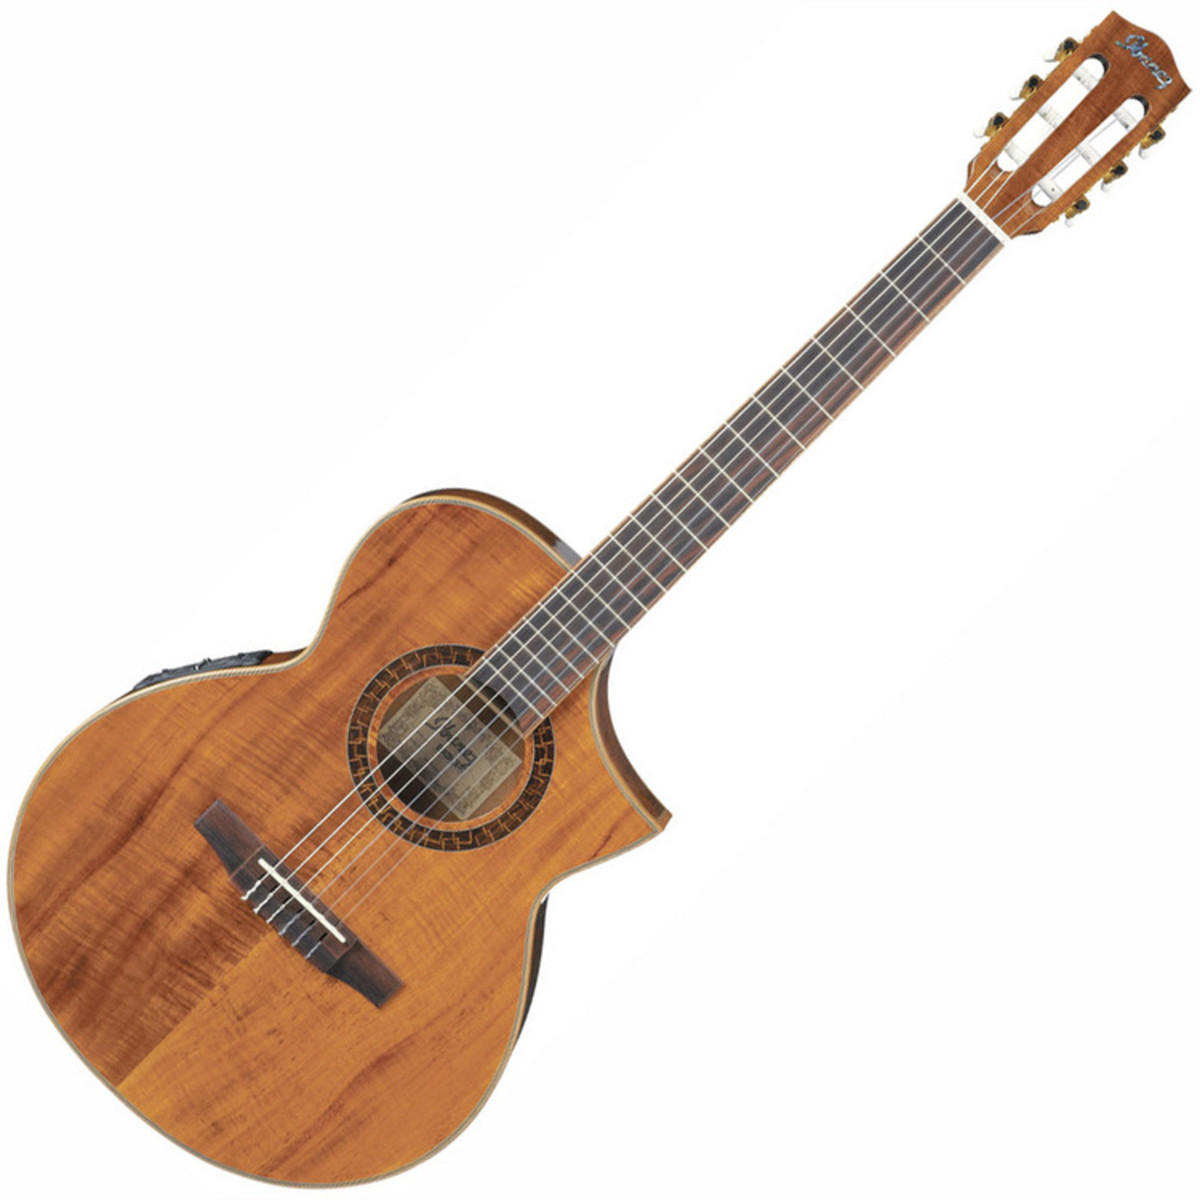 ibanez ewn28k0e exotic wood nylon string guitar nearly new at gear4music. Black Bedroom Furniture Sets. Home Design Ideas